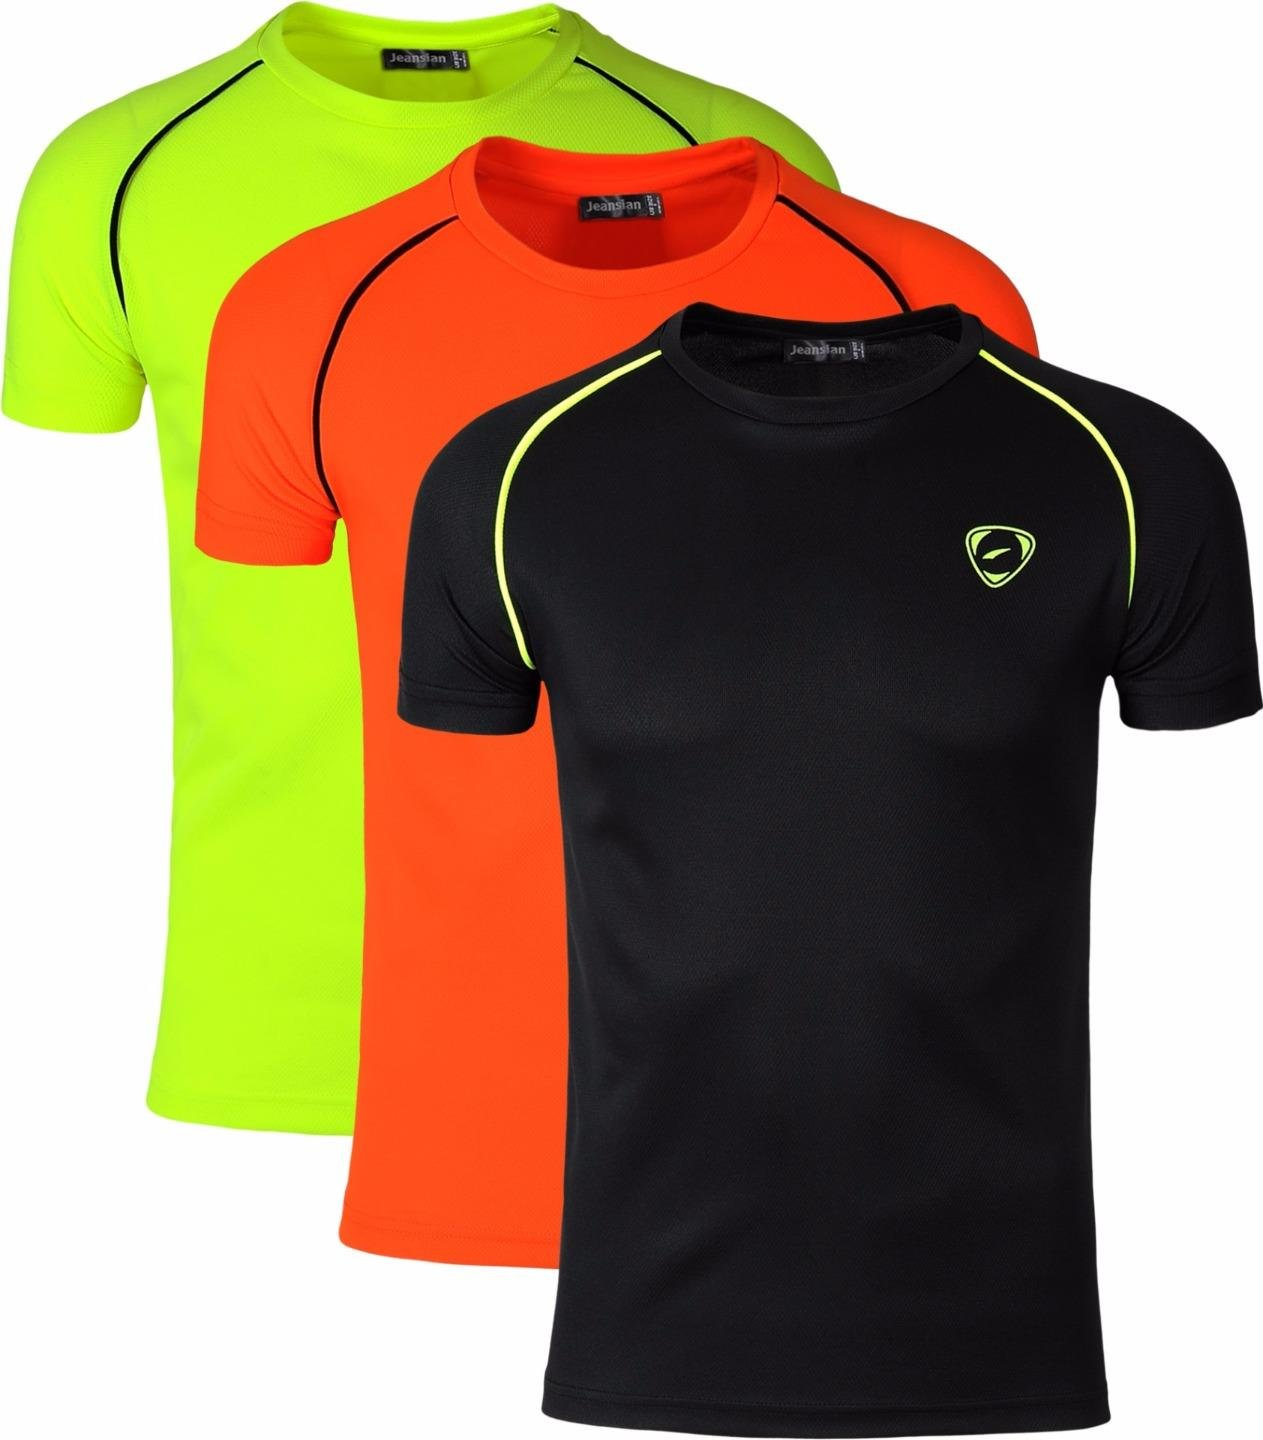 jeansian Men's 3 Packs Athletic Quick Dry Compression Sport T-Shirt Tees LSL182 MFN_LSL182